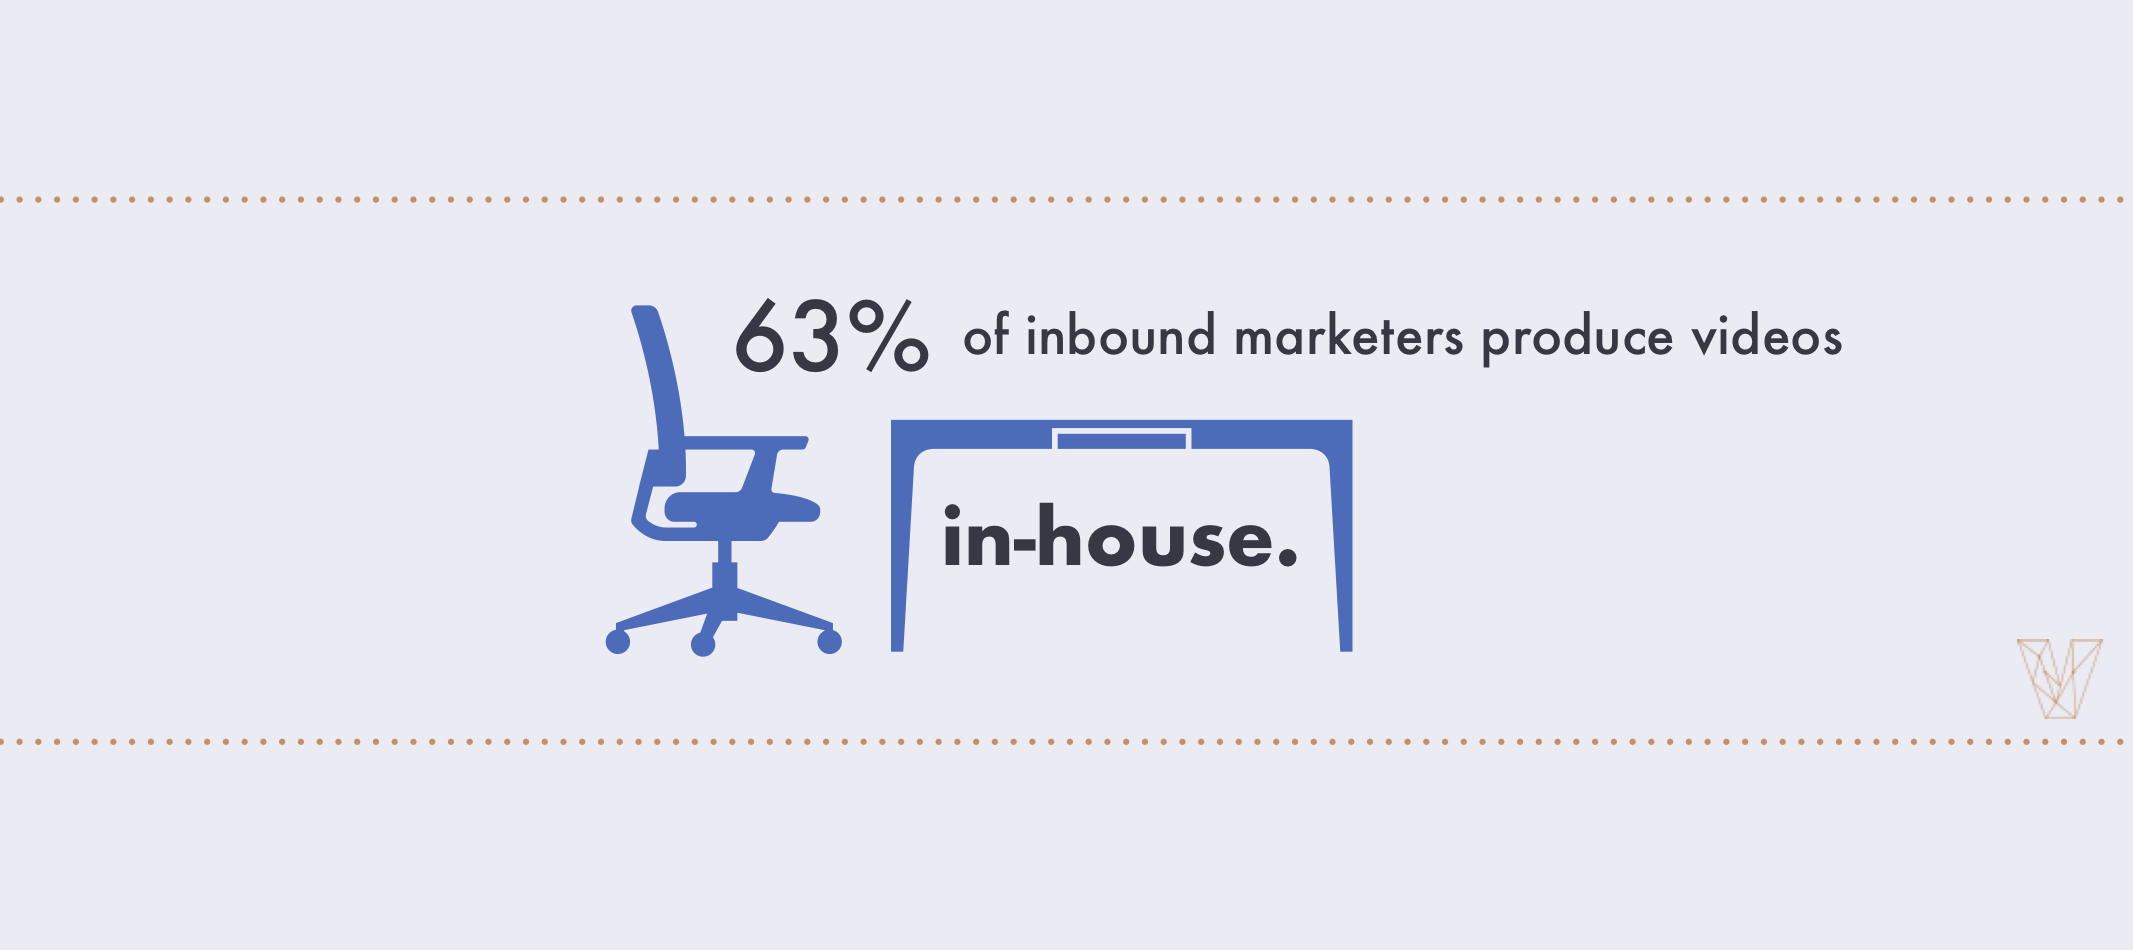 63% of inbound marketers produce videos in-house